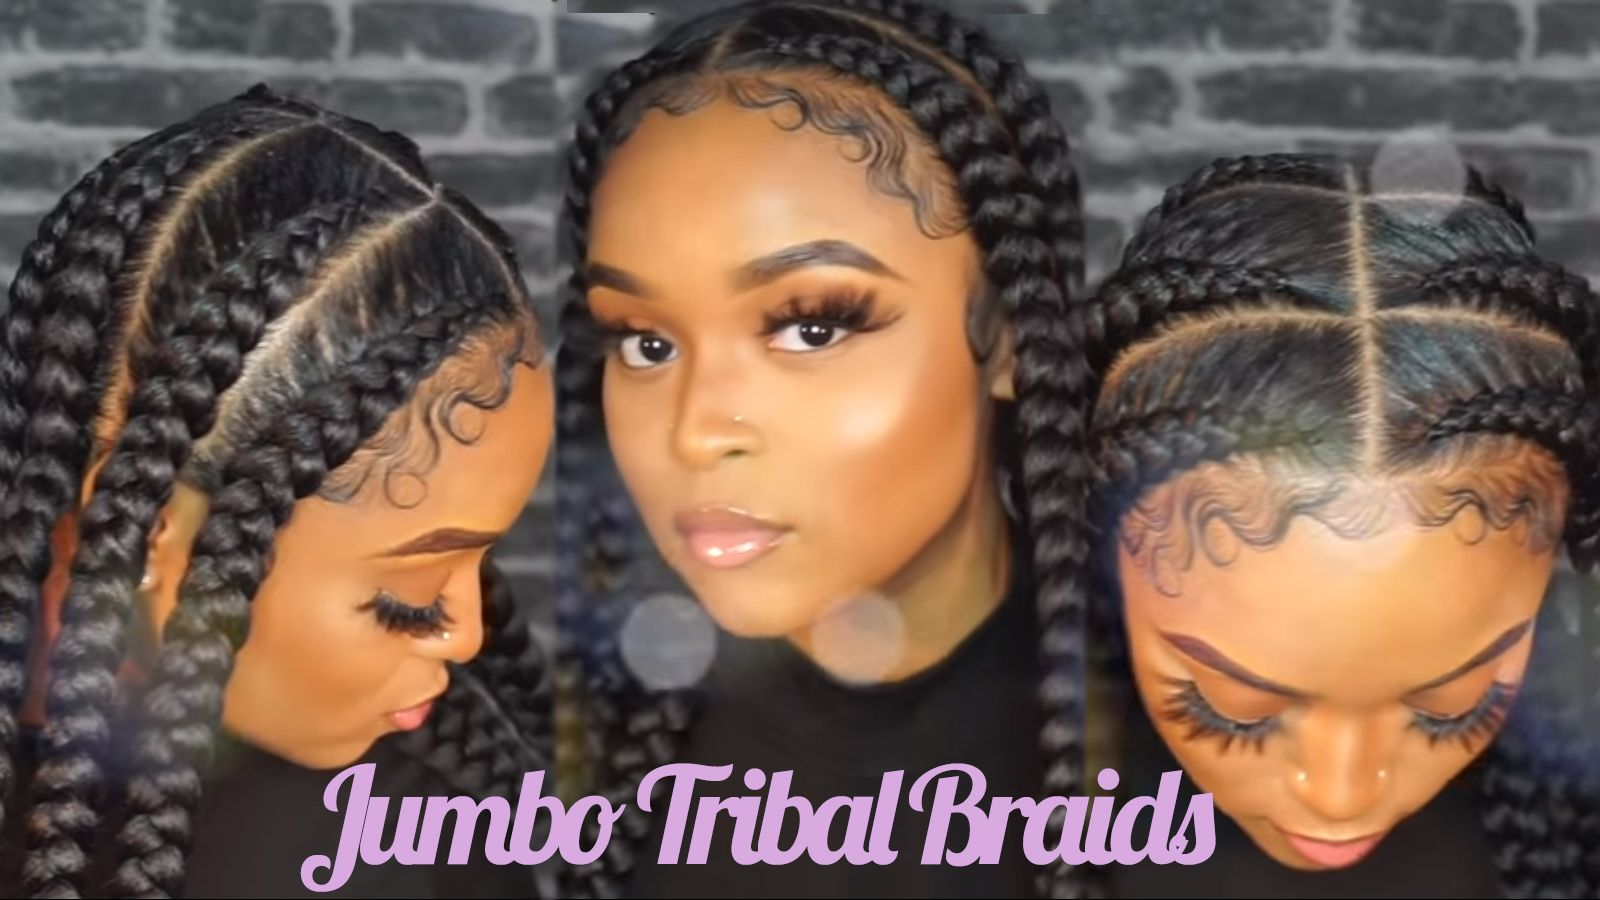 Stylish Badass Jumbo Tribal Braids To Try African American Hairstyle Videos Aahv In 2020 Braided Hairstyles Black Girl Braided Hairstyles Box Braids Hairstyles